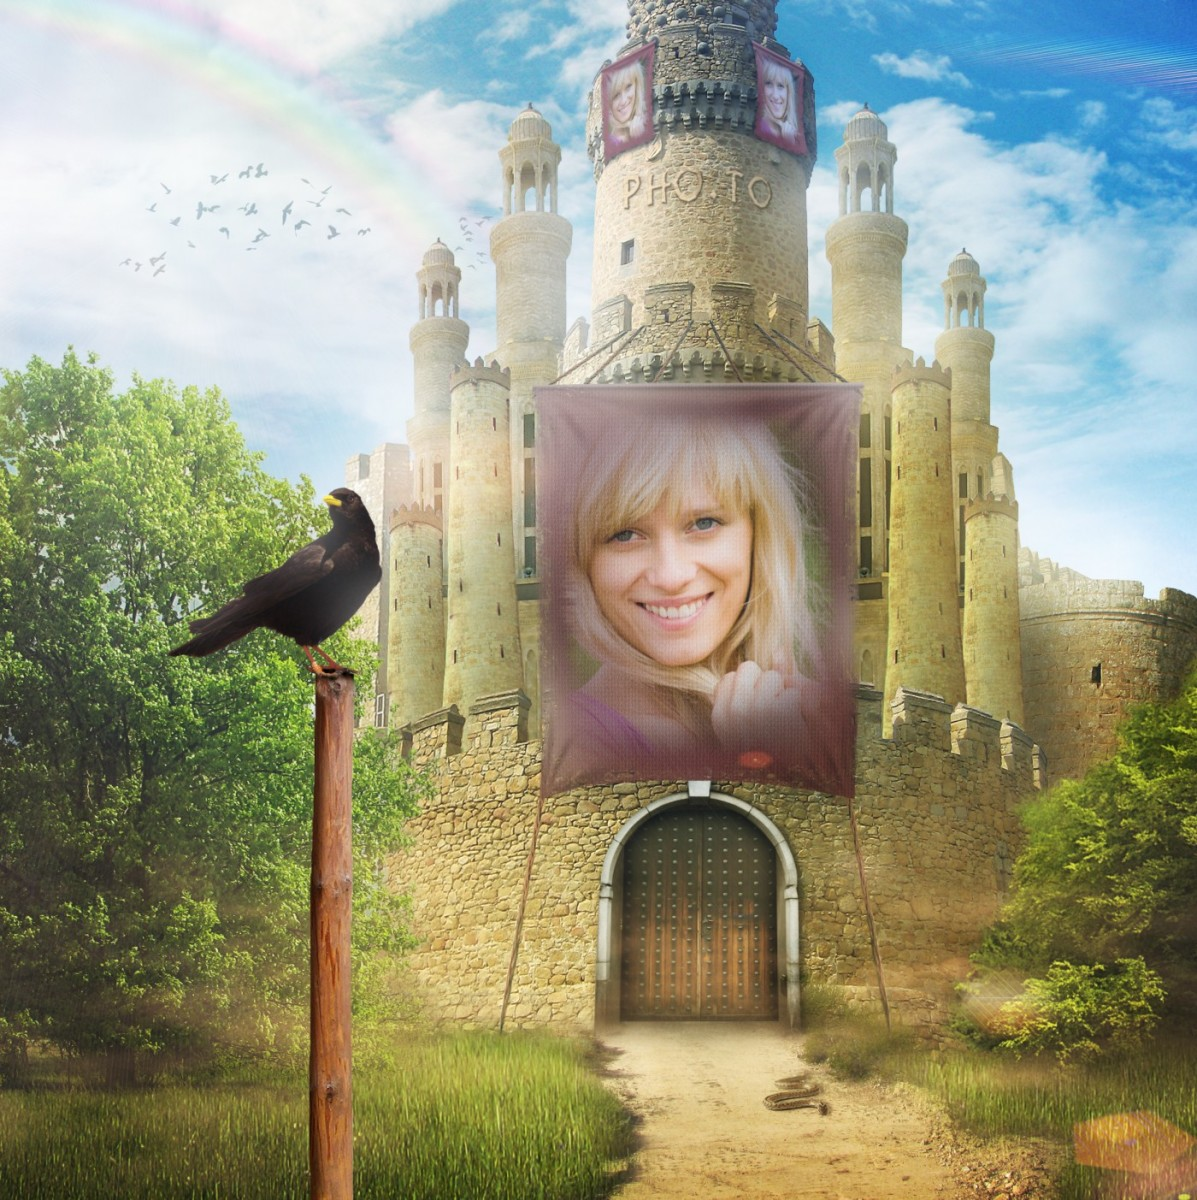 Become an owner of a magical castle with this faery photo frame